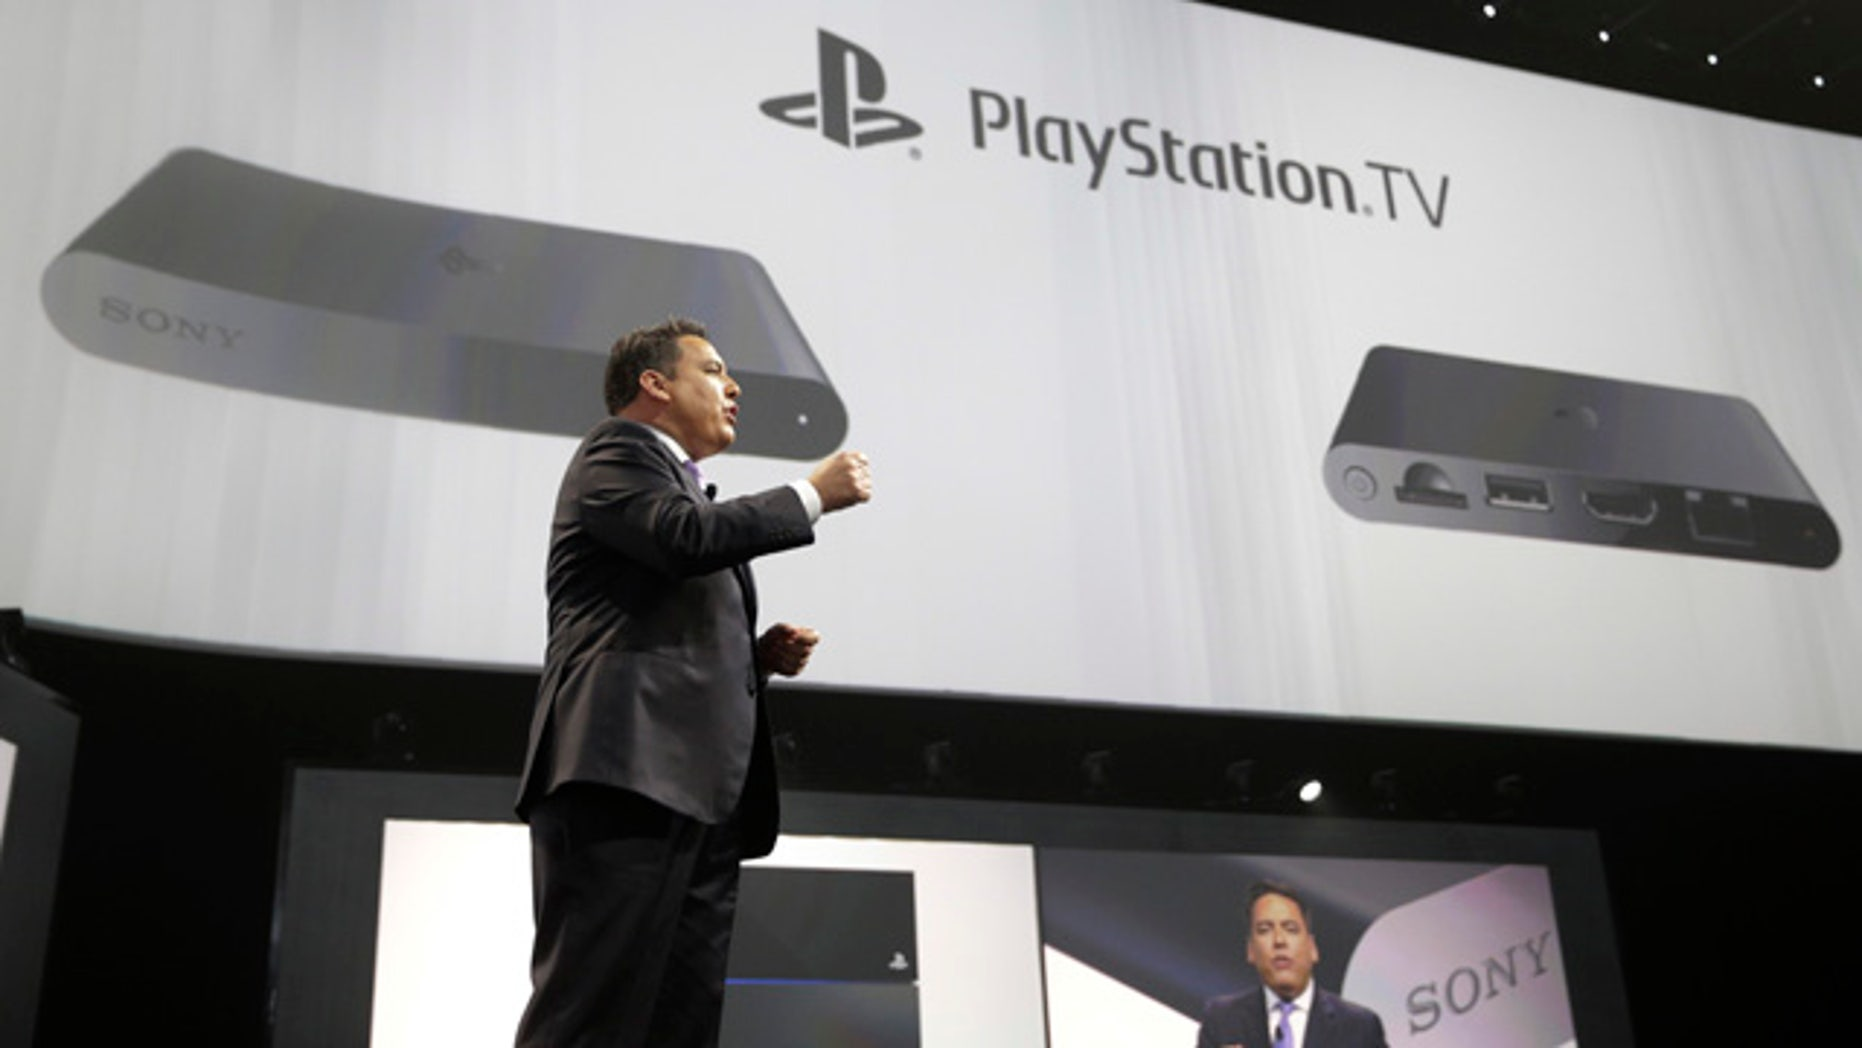 June 9, 2014: Shawn Layden, president and CEO of Sony Computer Entertainment America, introduces the PlayStation TV during a presentation at the Electronic Entertainment Expo in Los Angeles. (AP Photo/Jae C. Hong)